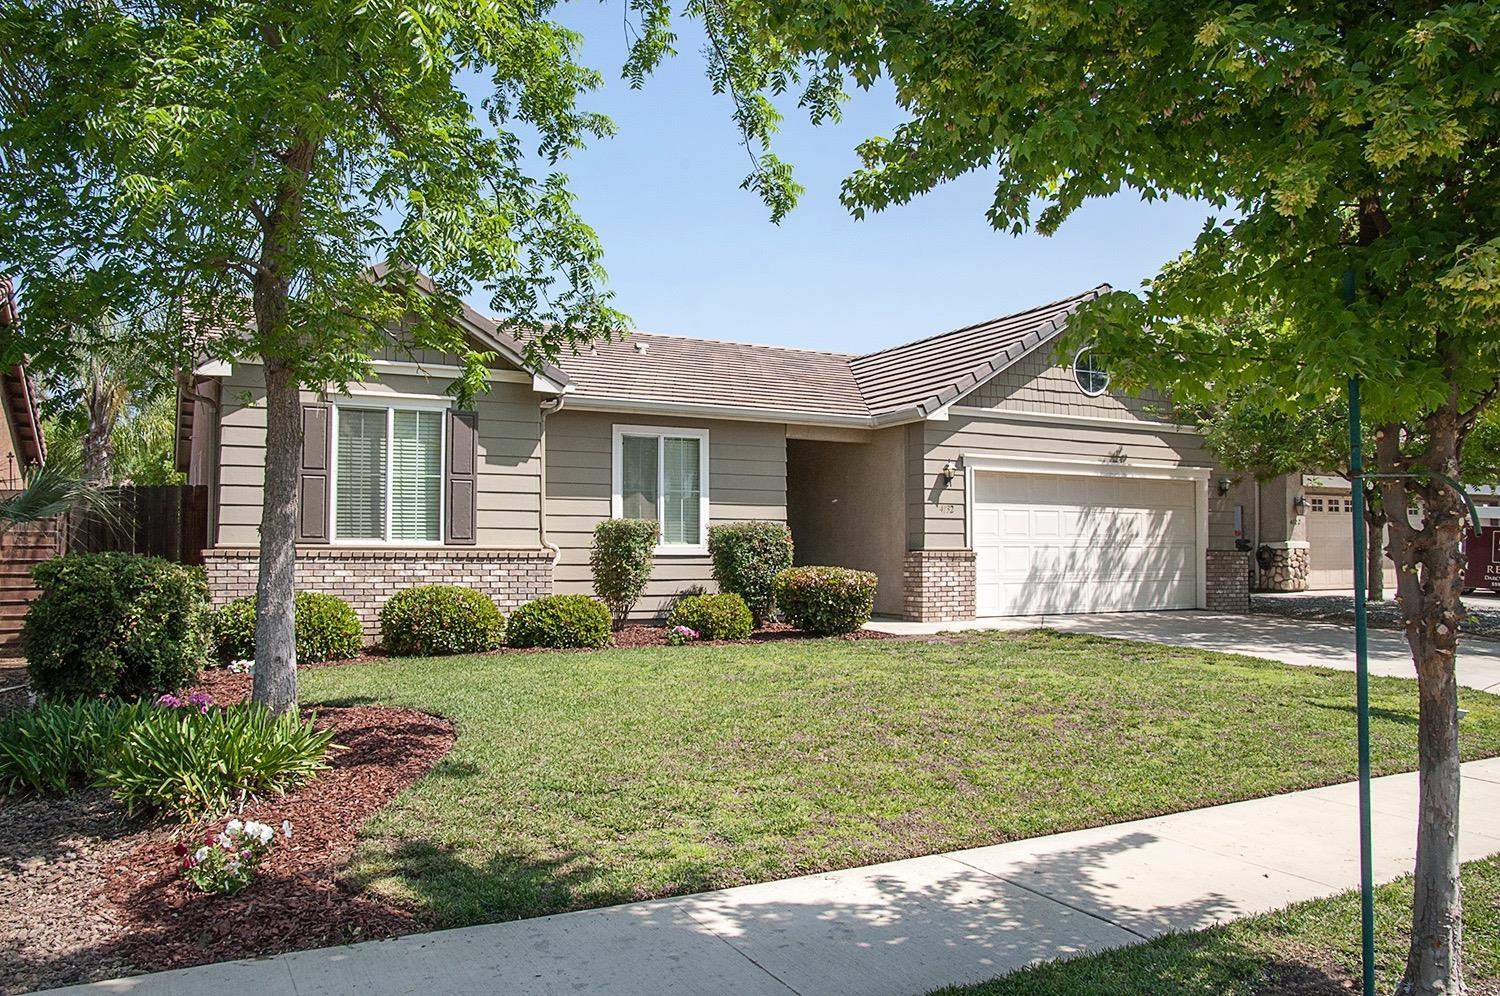 Hom In Sessel 4 Bed 2 Bath Home In Visalia For 279 000